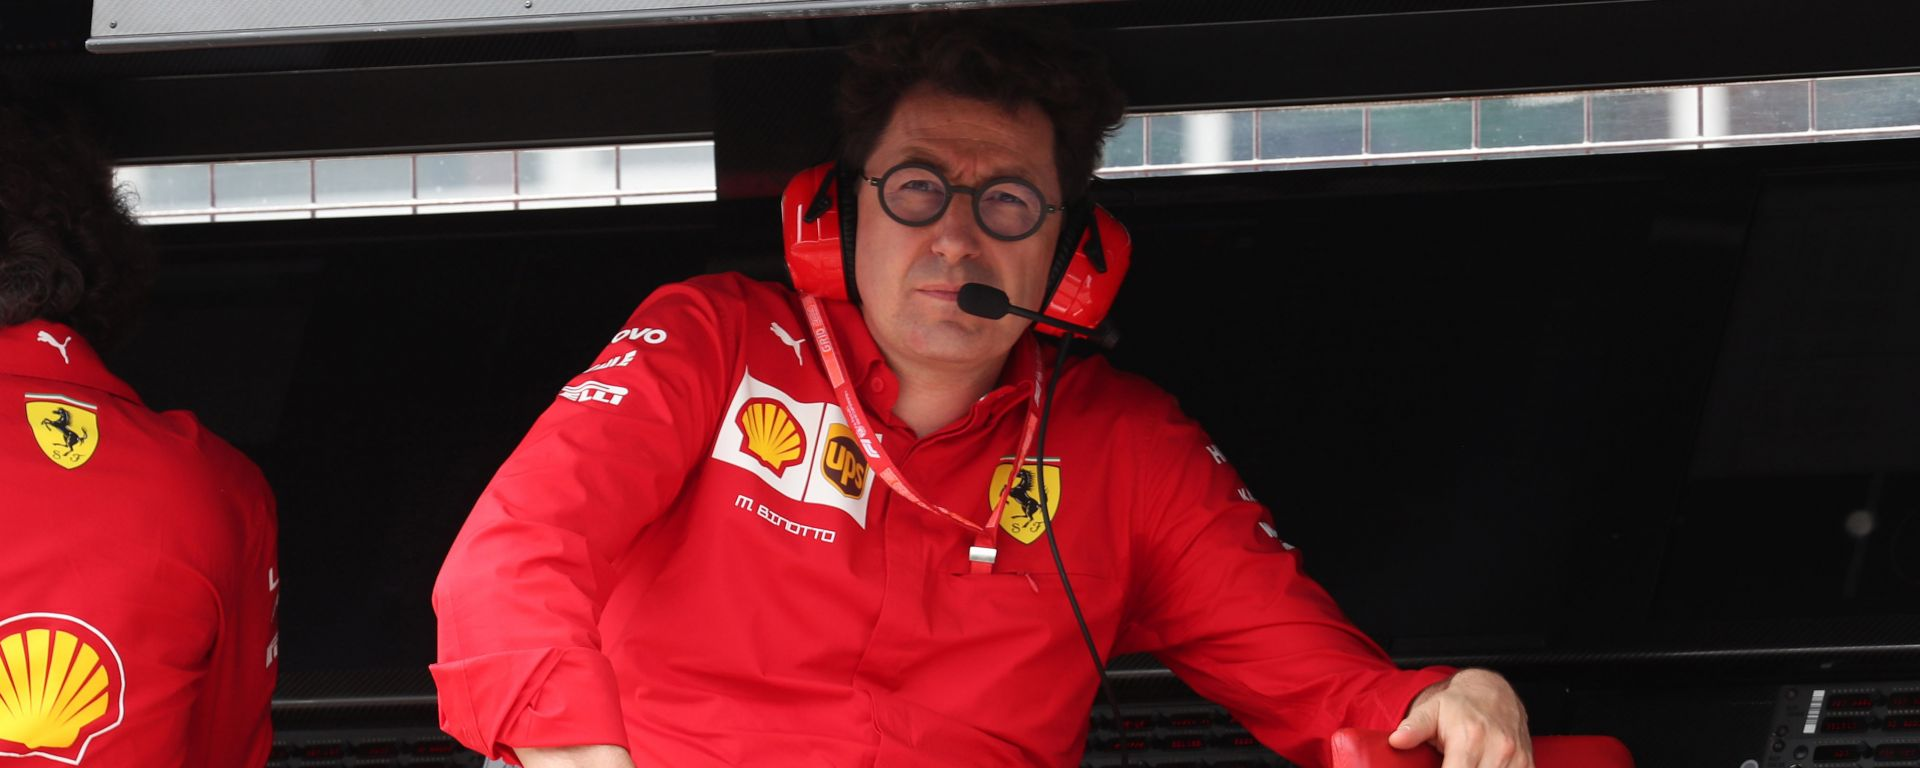 F1 GP Germania 2019, Mattia Binotto (Ferrari)